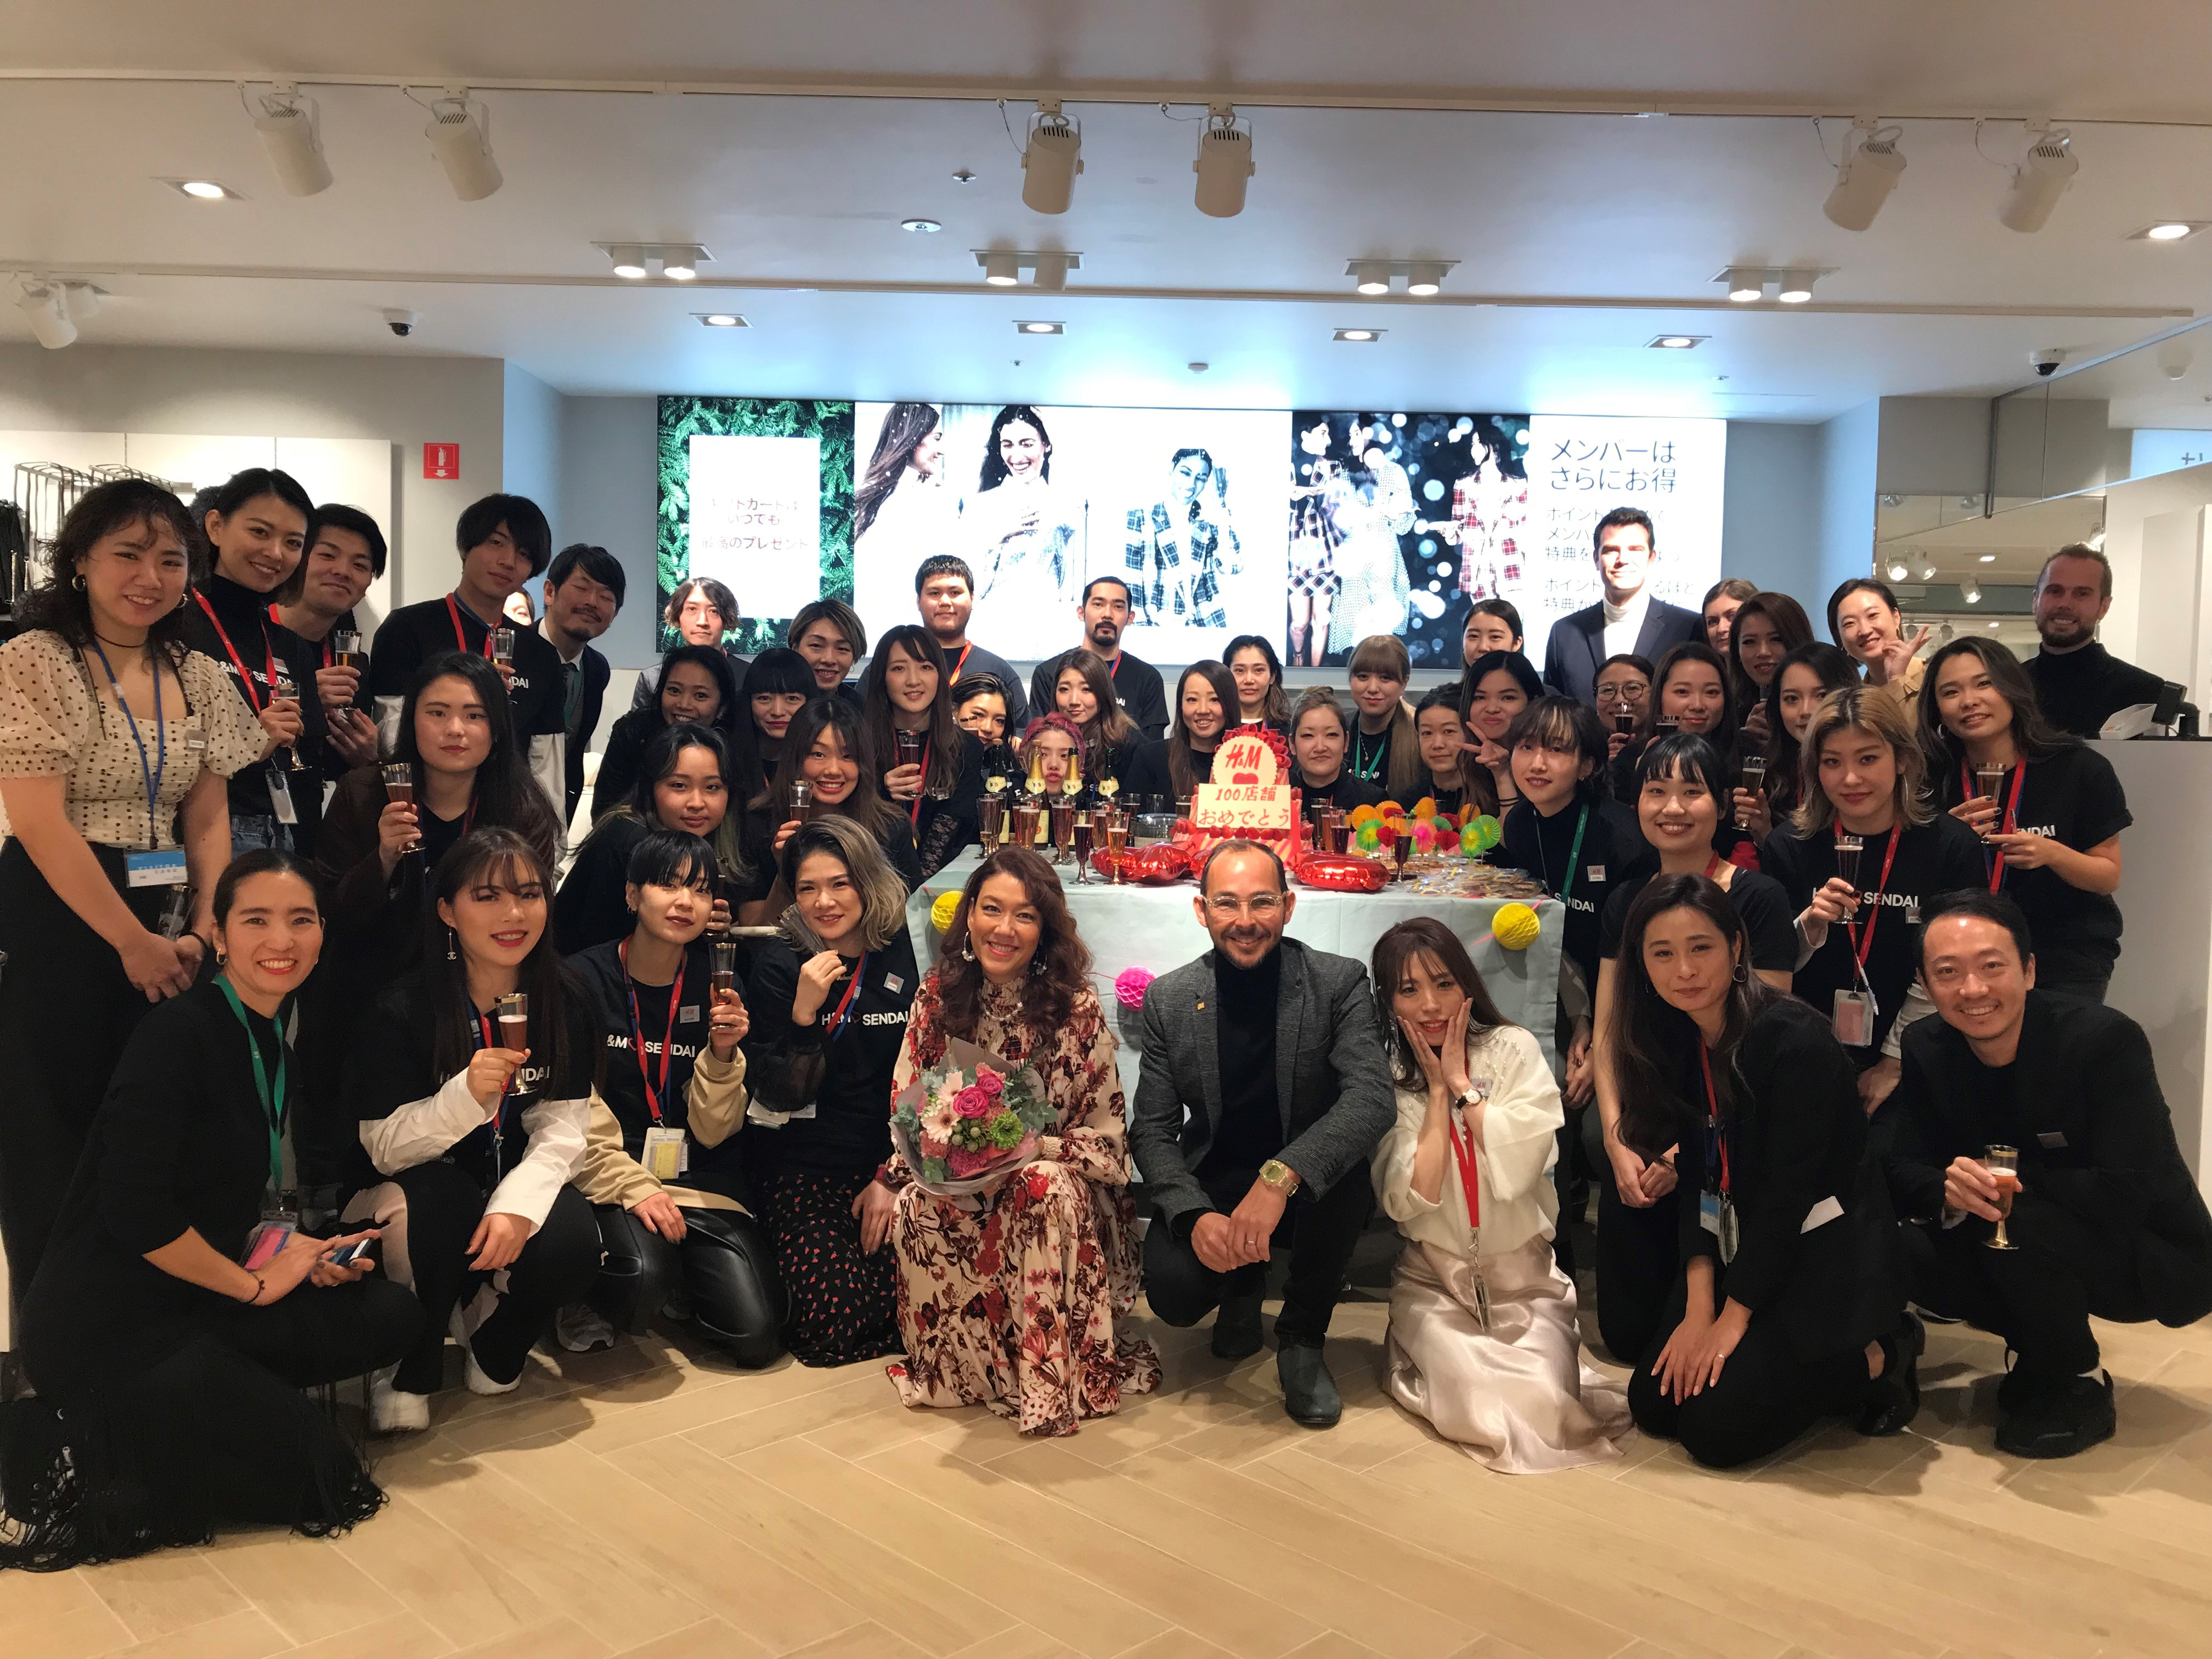 H&M Japan opened its 100th store in Sendai